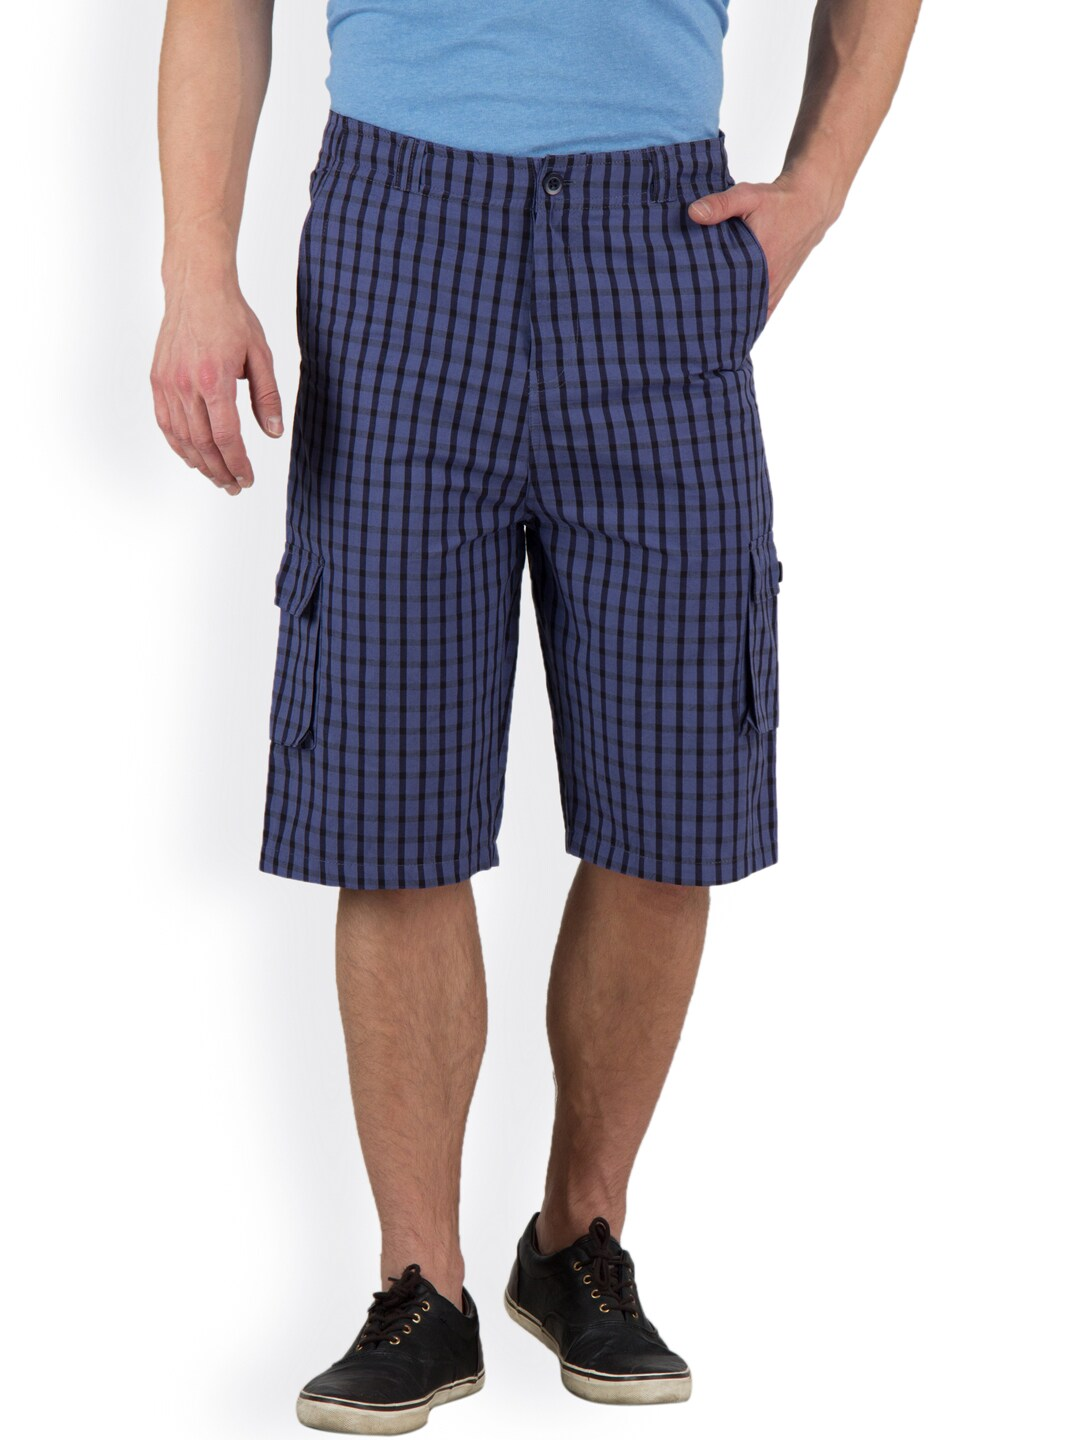 bb0dbcc3d Shorts | Buy Shorts Online in India at Best Price